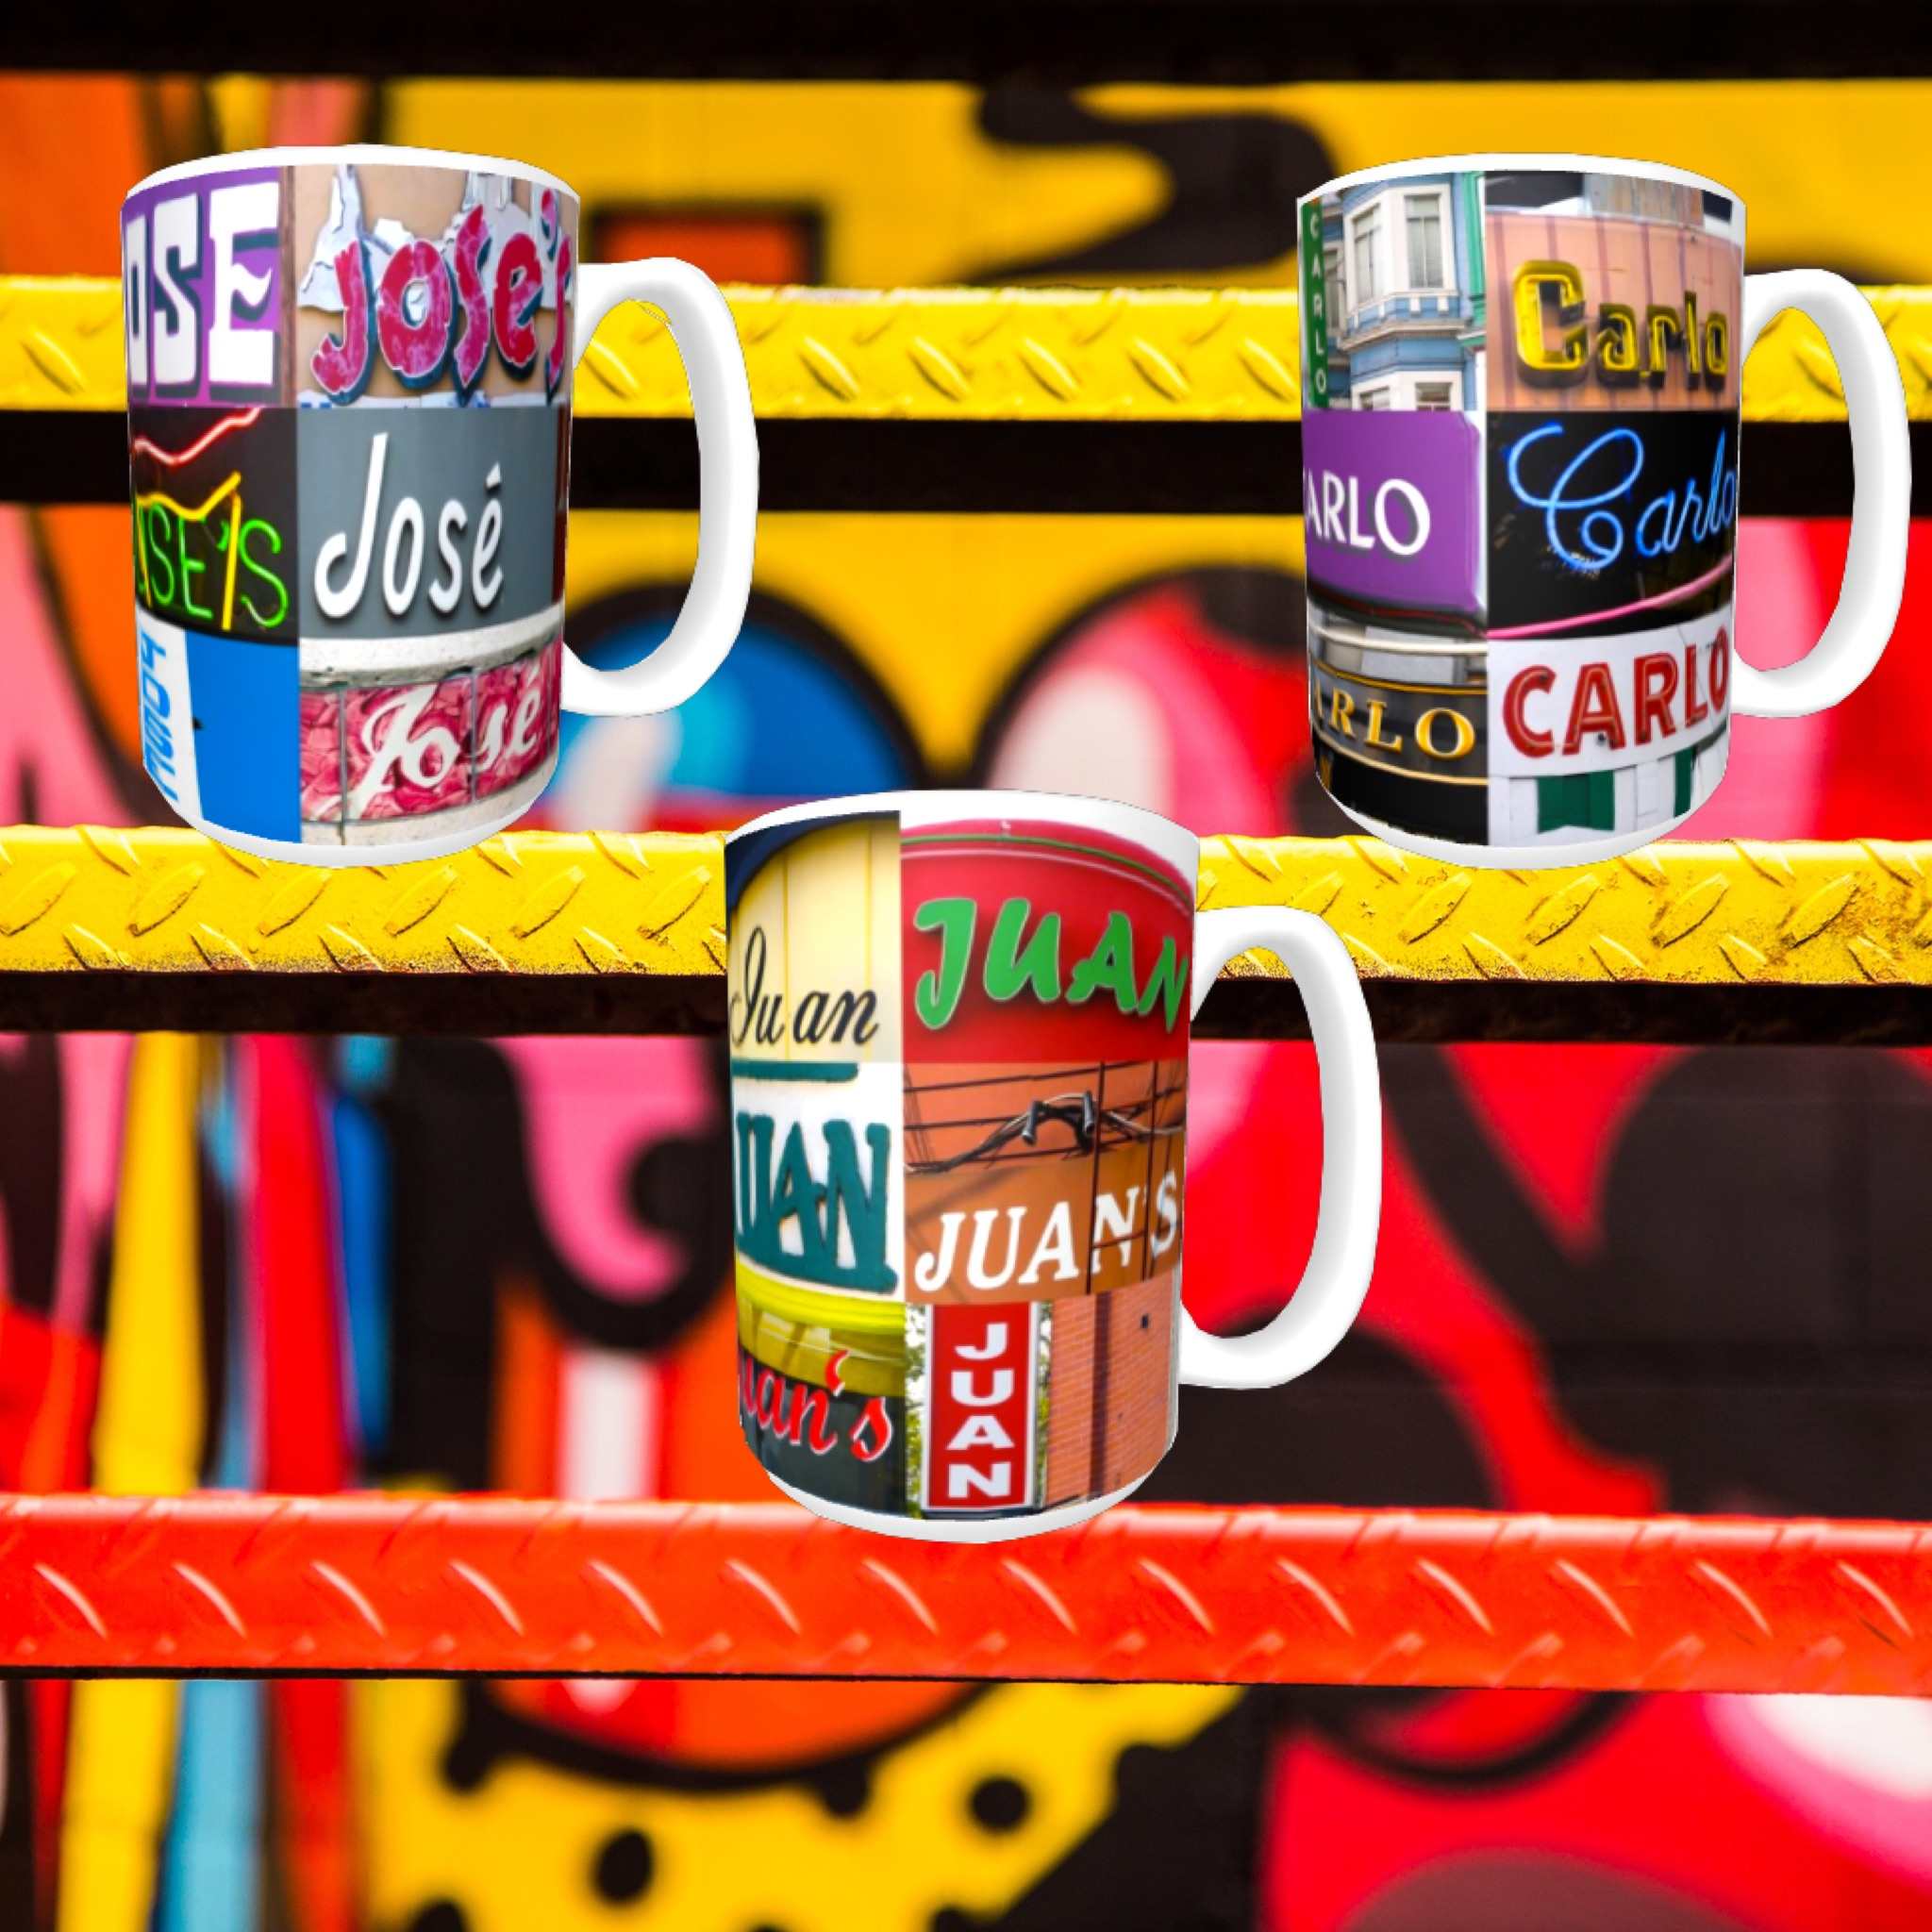 https://www.etsy.com/listing/516876652/personalized-coffee-mug-featuring-the